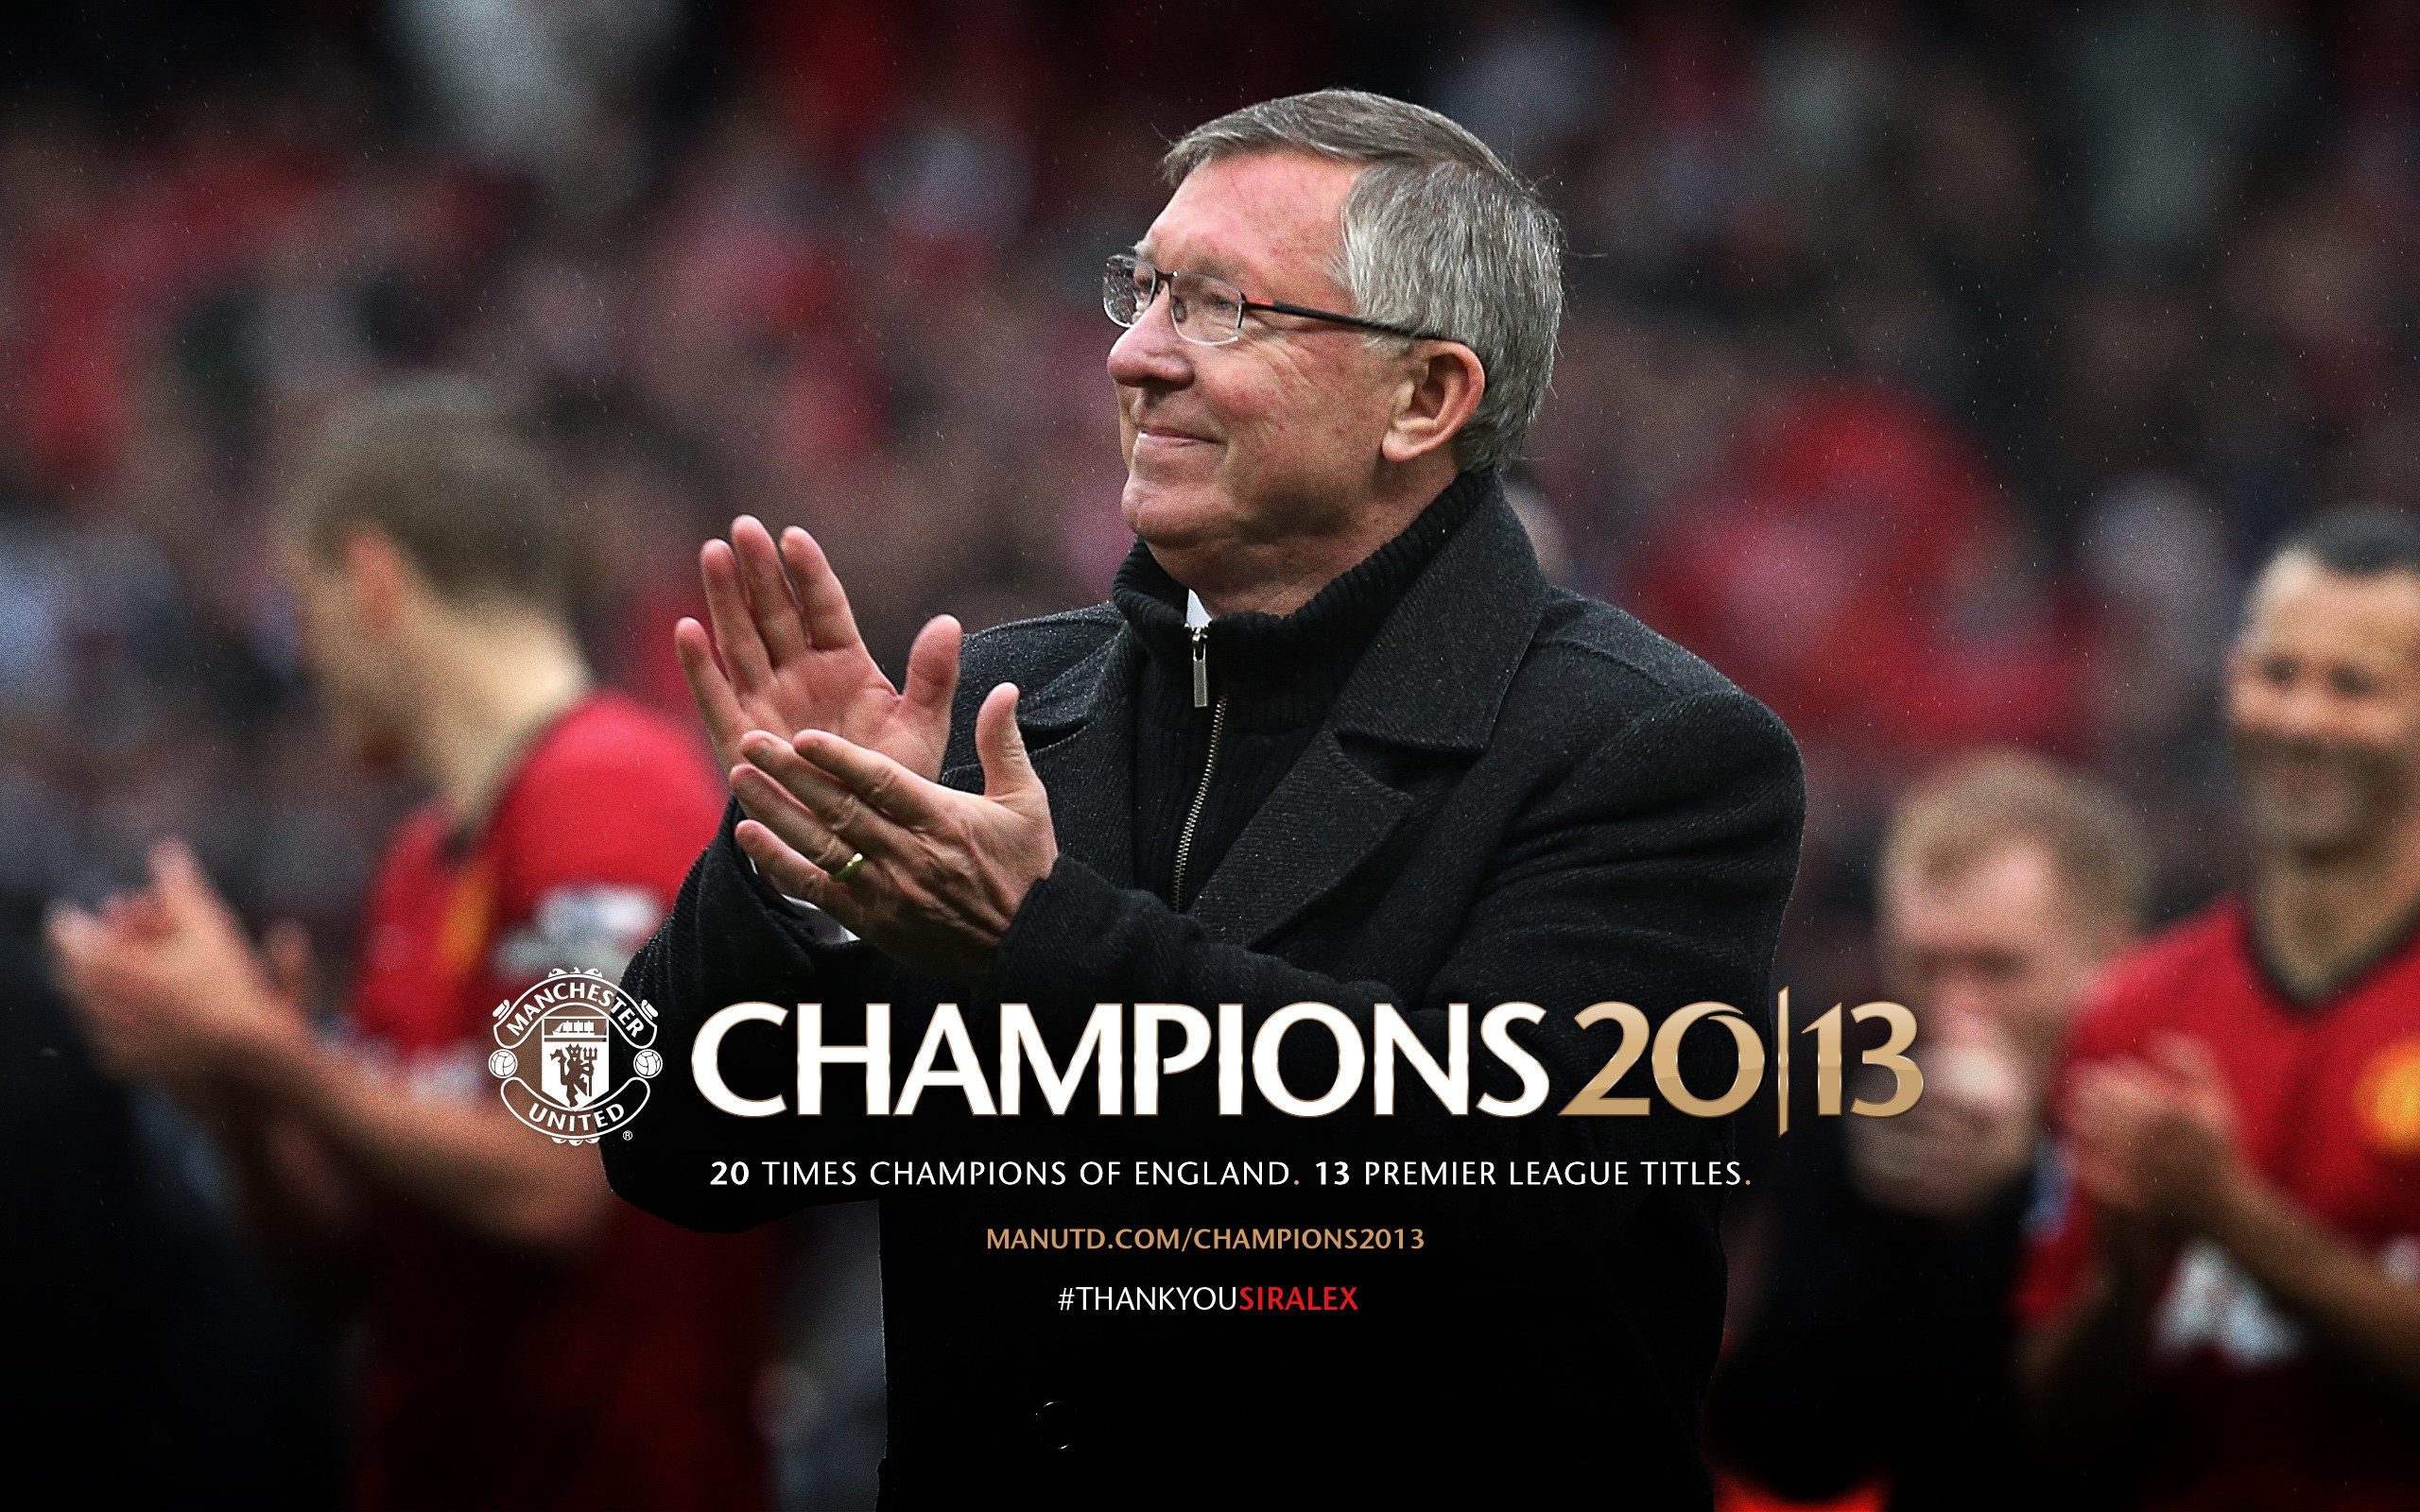 2560x1600 EXCLUSIVE WALLPAPER : SIR ALEX FERGUSON